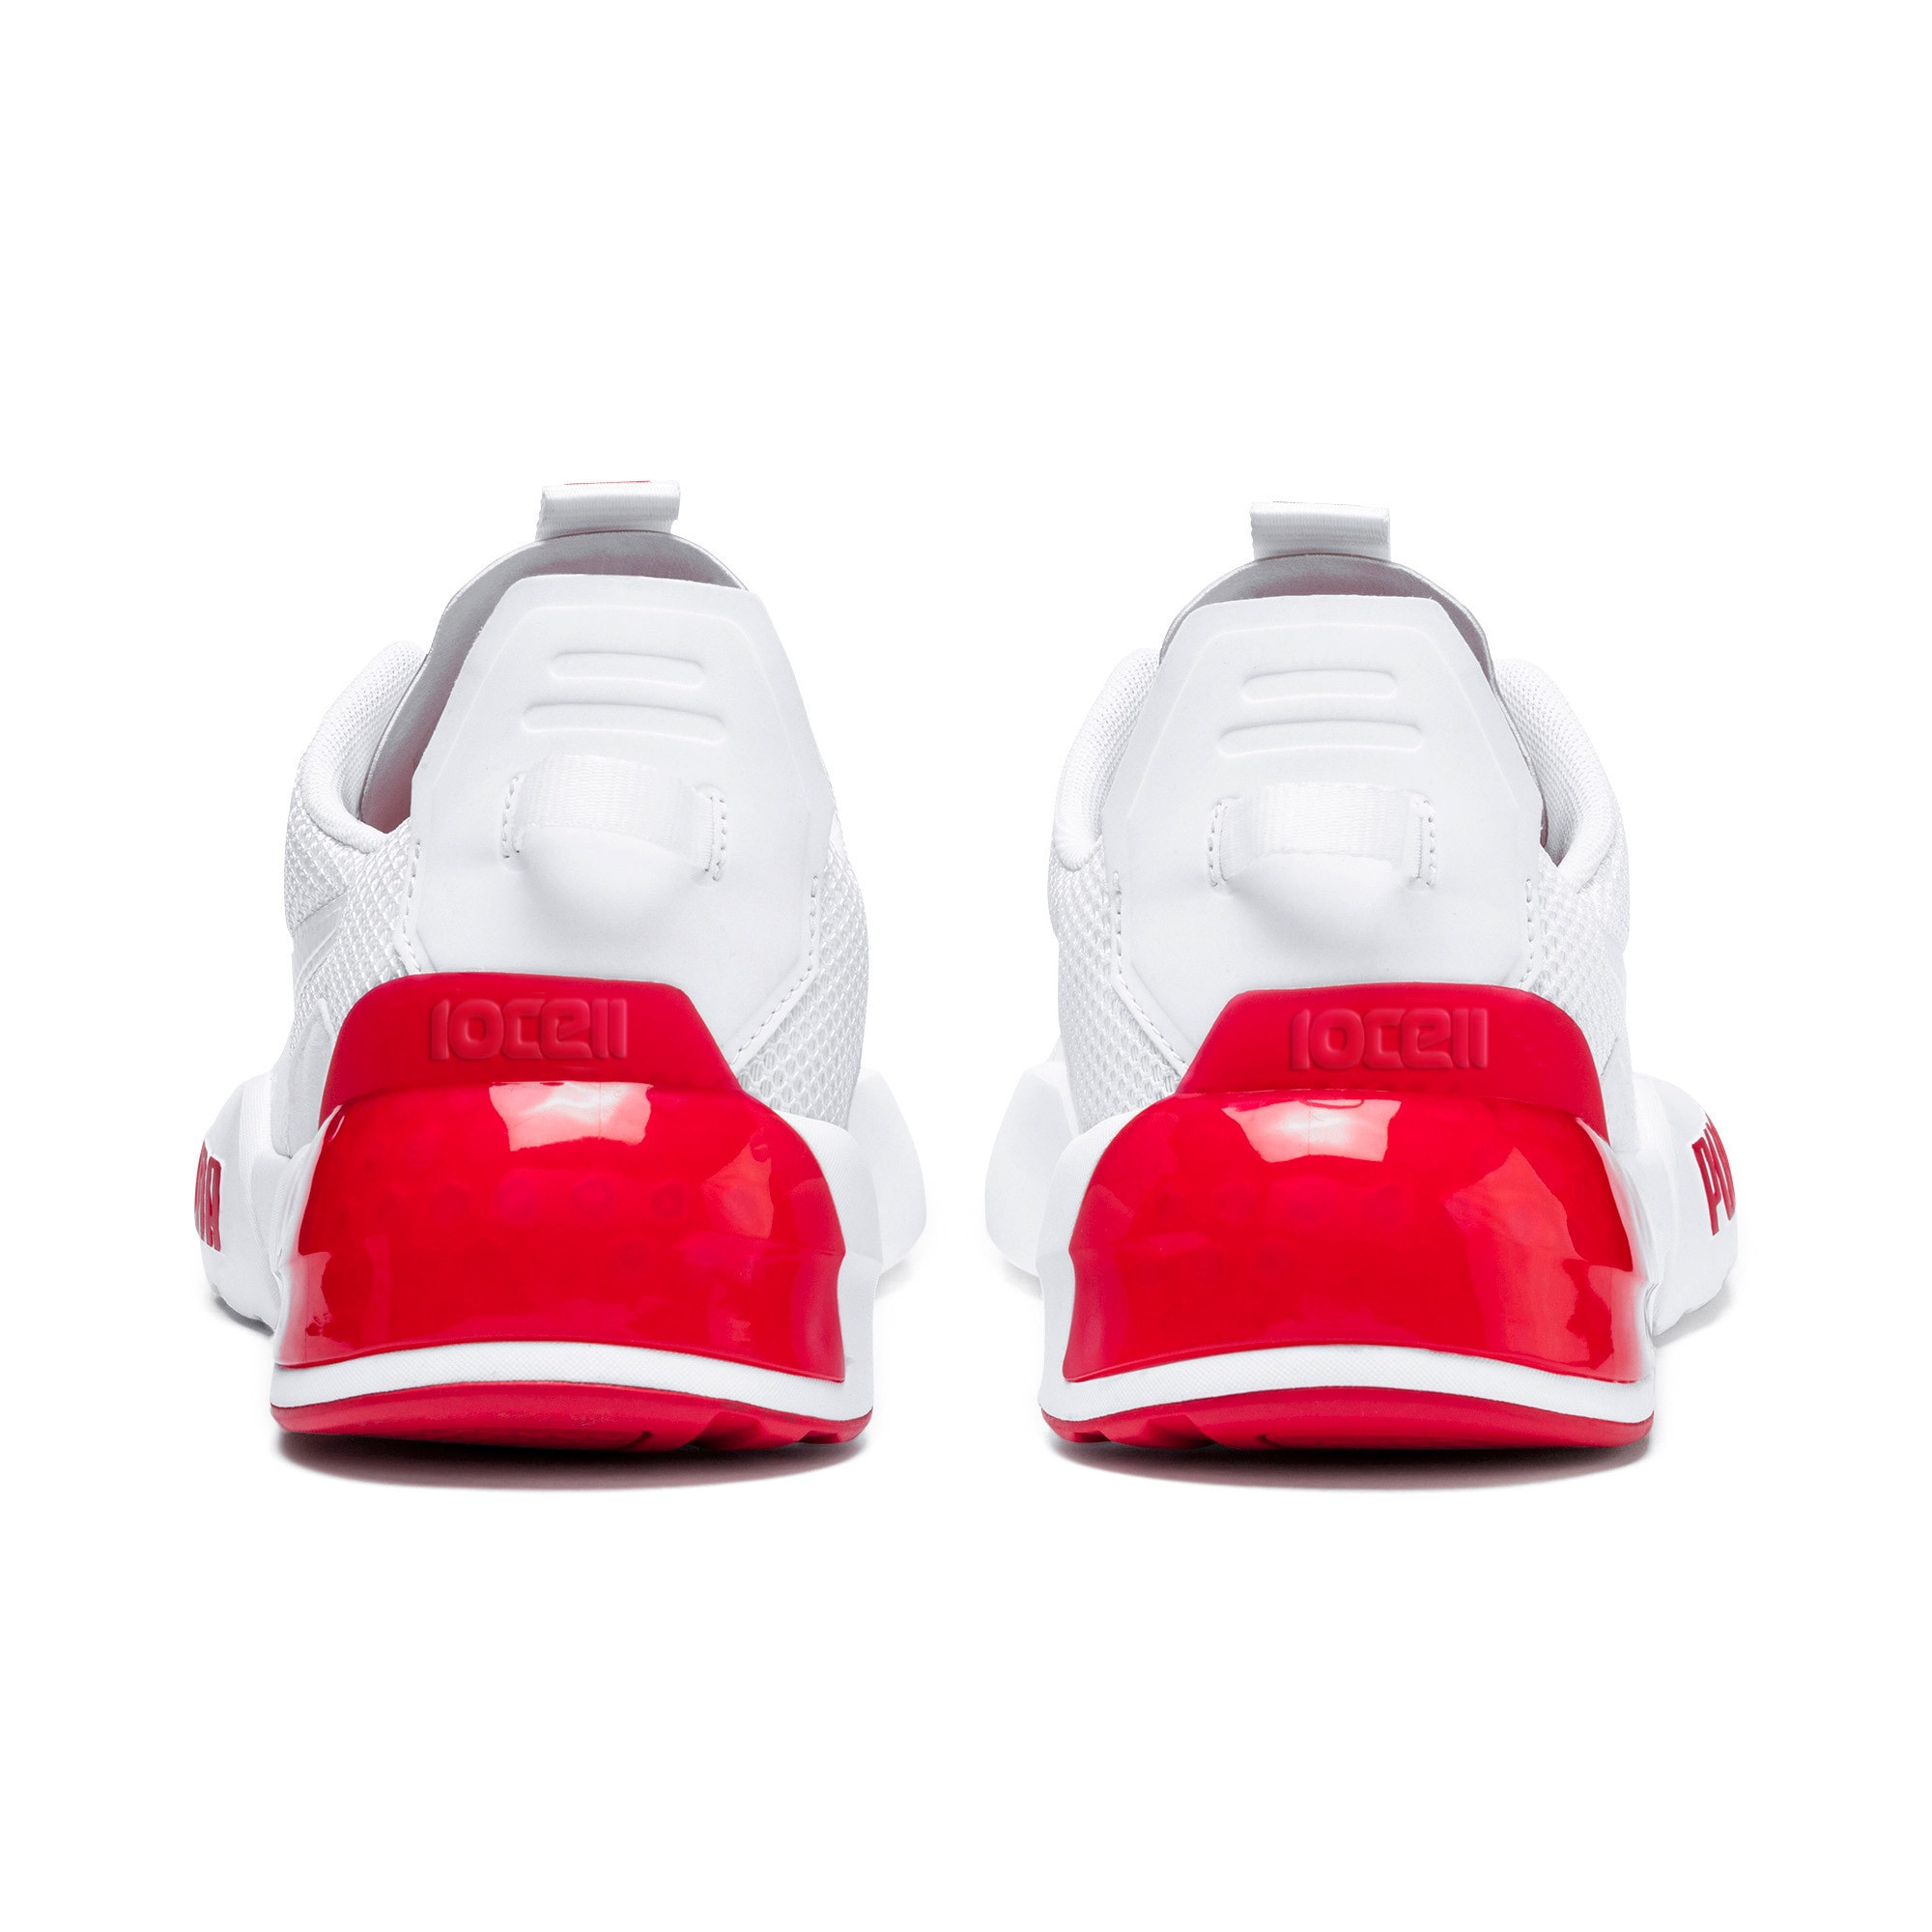 Thumbnail 4 of CELL Phase Men's Training Shoes, Puma White-High Risk Red, medium